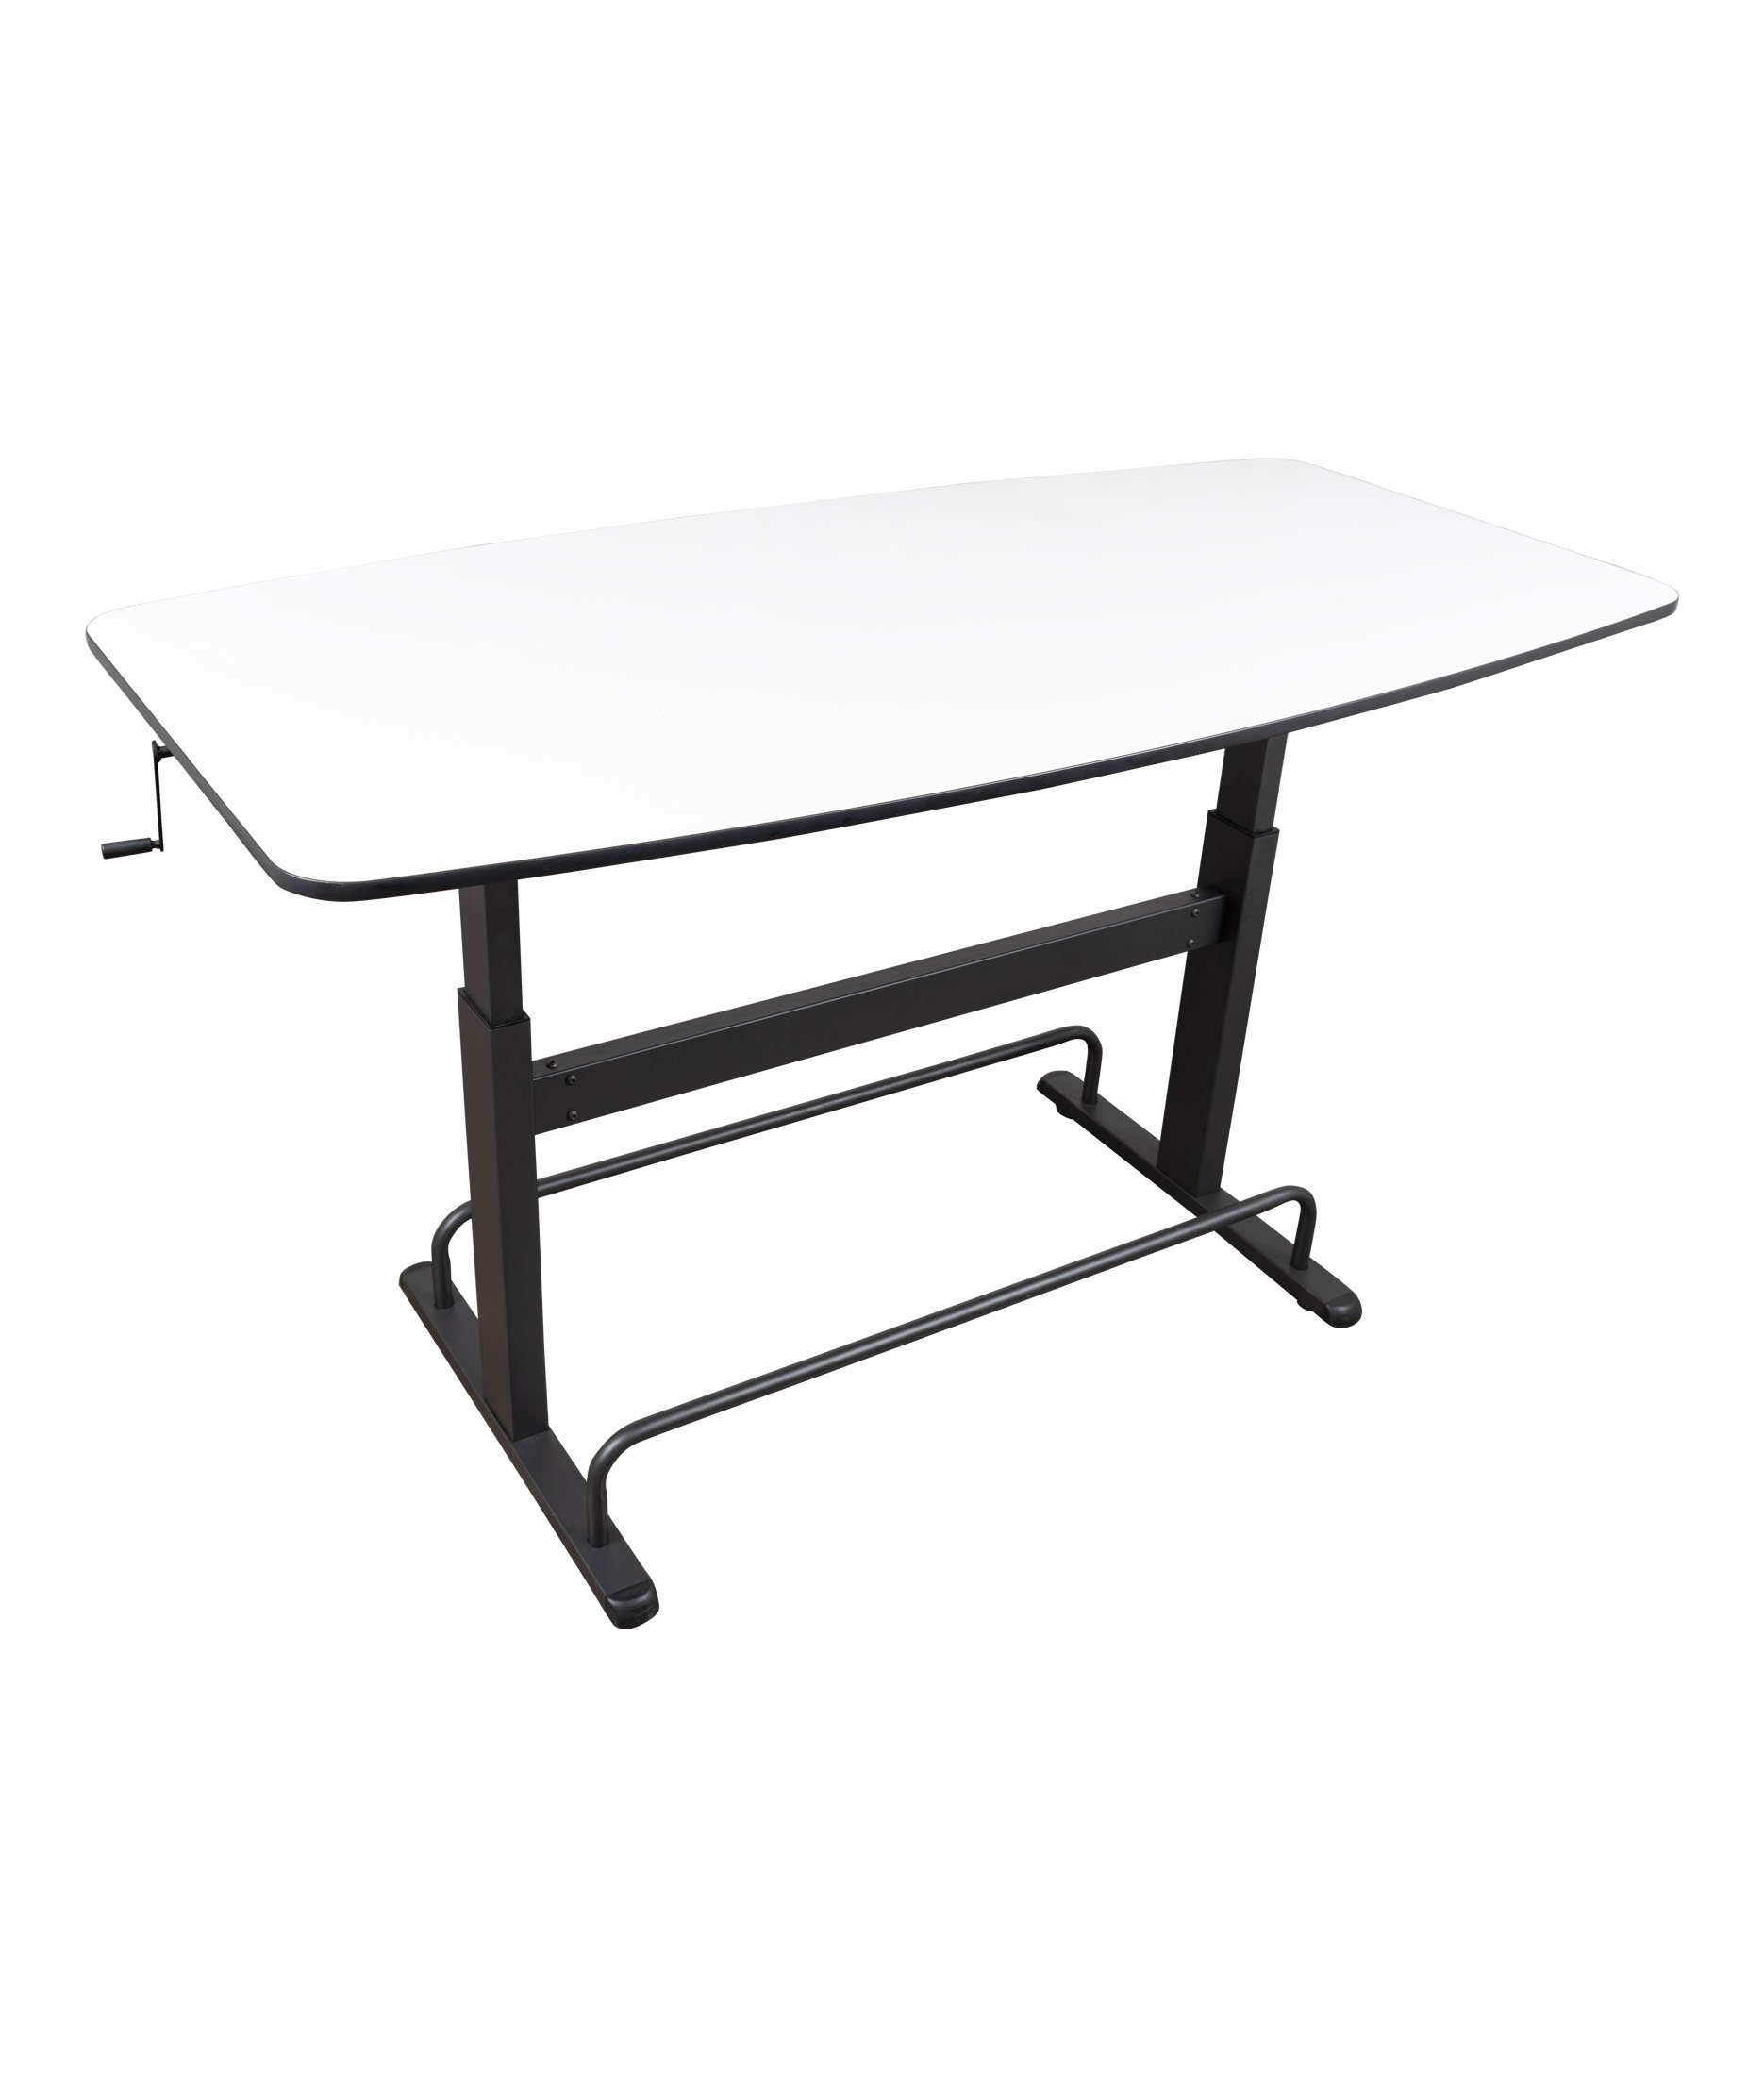 Crank Height Adjustable Standing Conference Table | Meeting Table | Collaboration Table | 72'' x 36'' (Charcoal Frame/Whiteboard Top) by Stand Up Desk Store